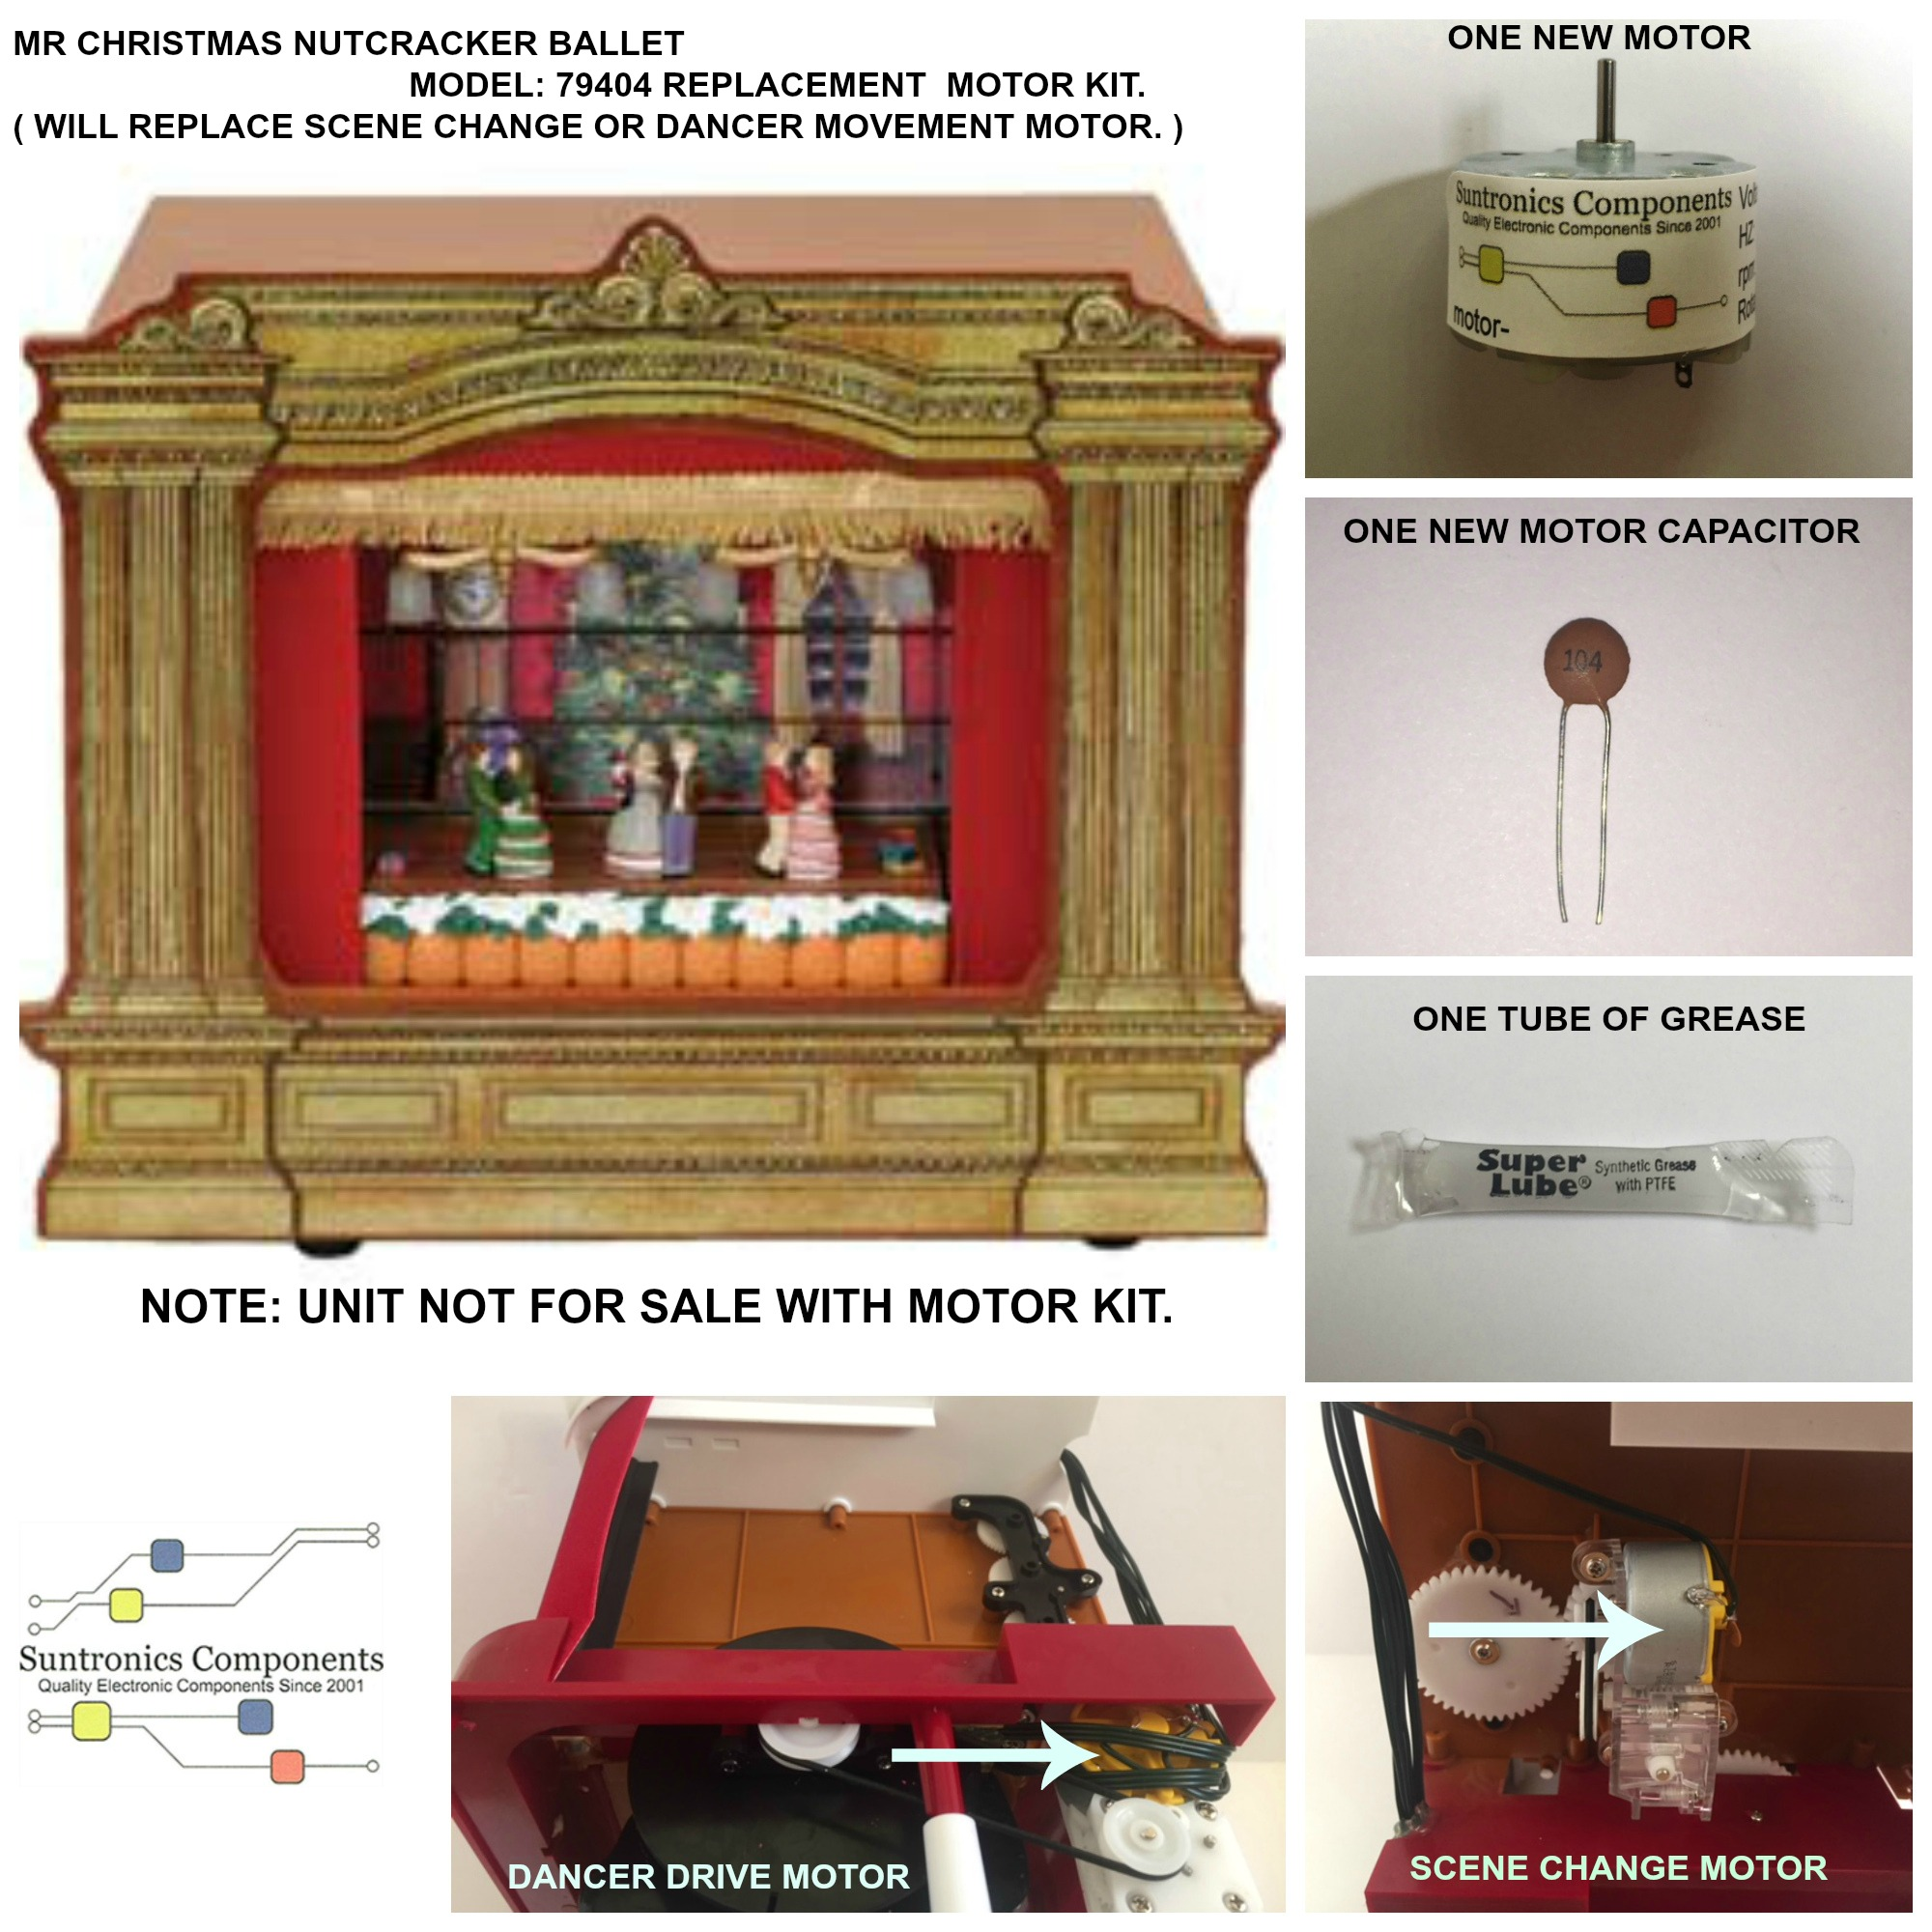 PicMonkey Image MR CHRISTMAS NUTCRACKER BALLET MODEL 79404 DANCER OR SCENE CHANGE MOTOR KIT.JPG